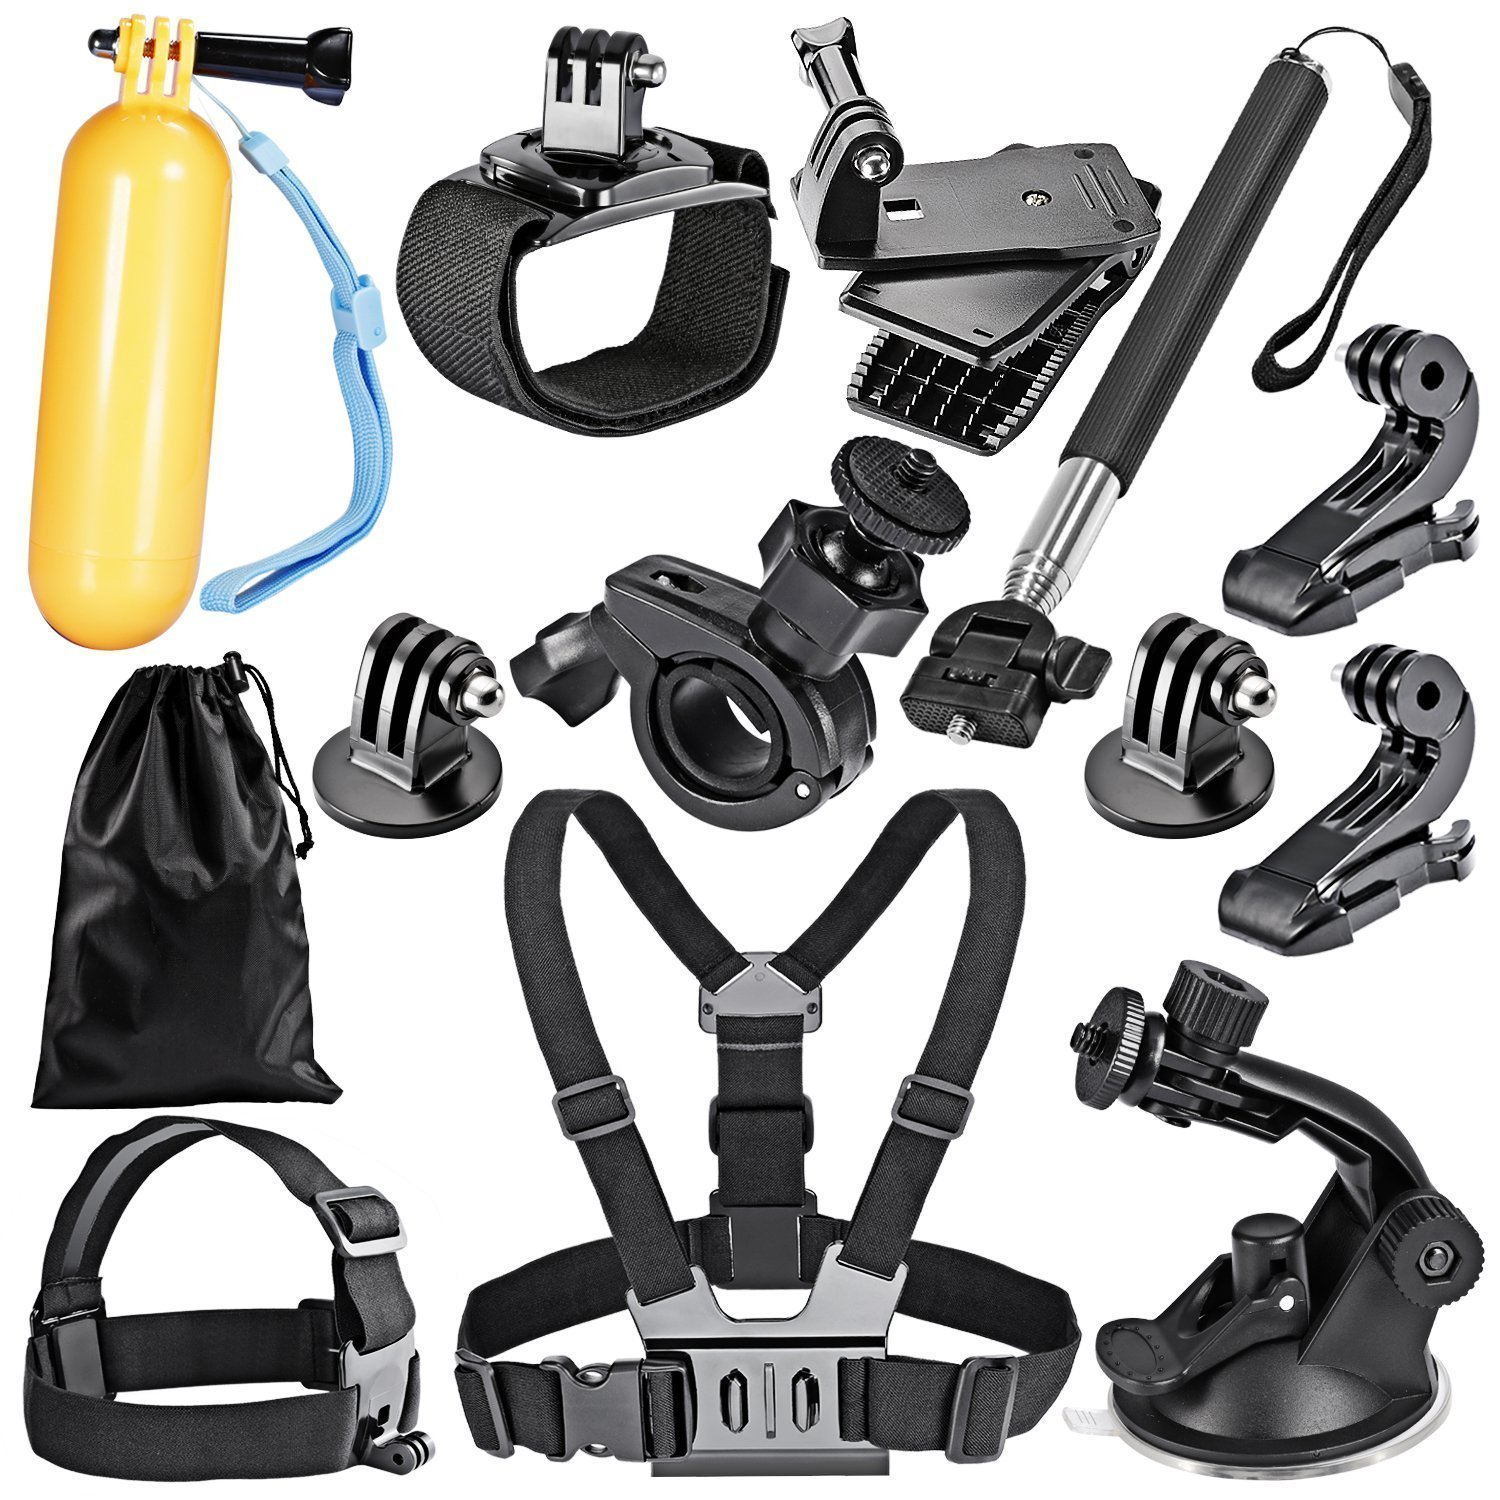 Robustrion Go Pro 12 in 1 Mounts and Straps Accessory Kit